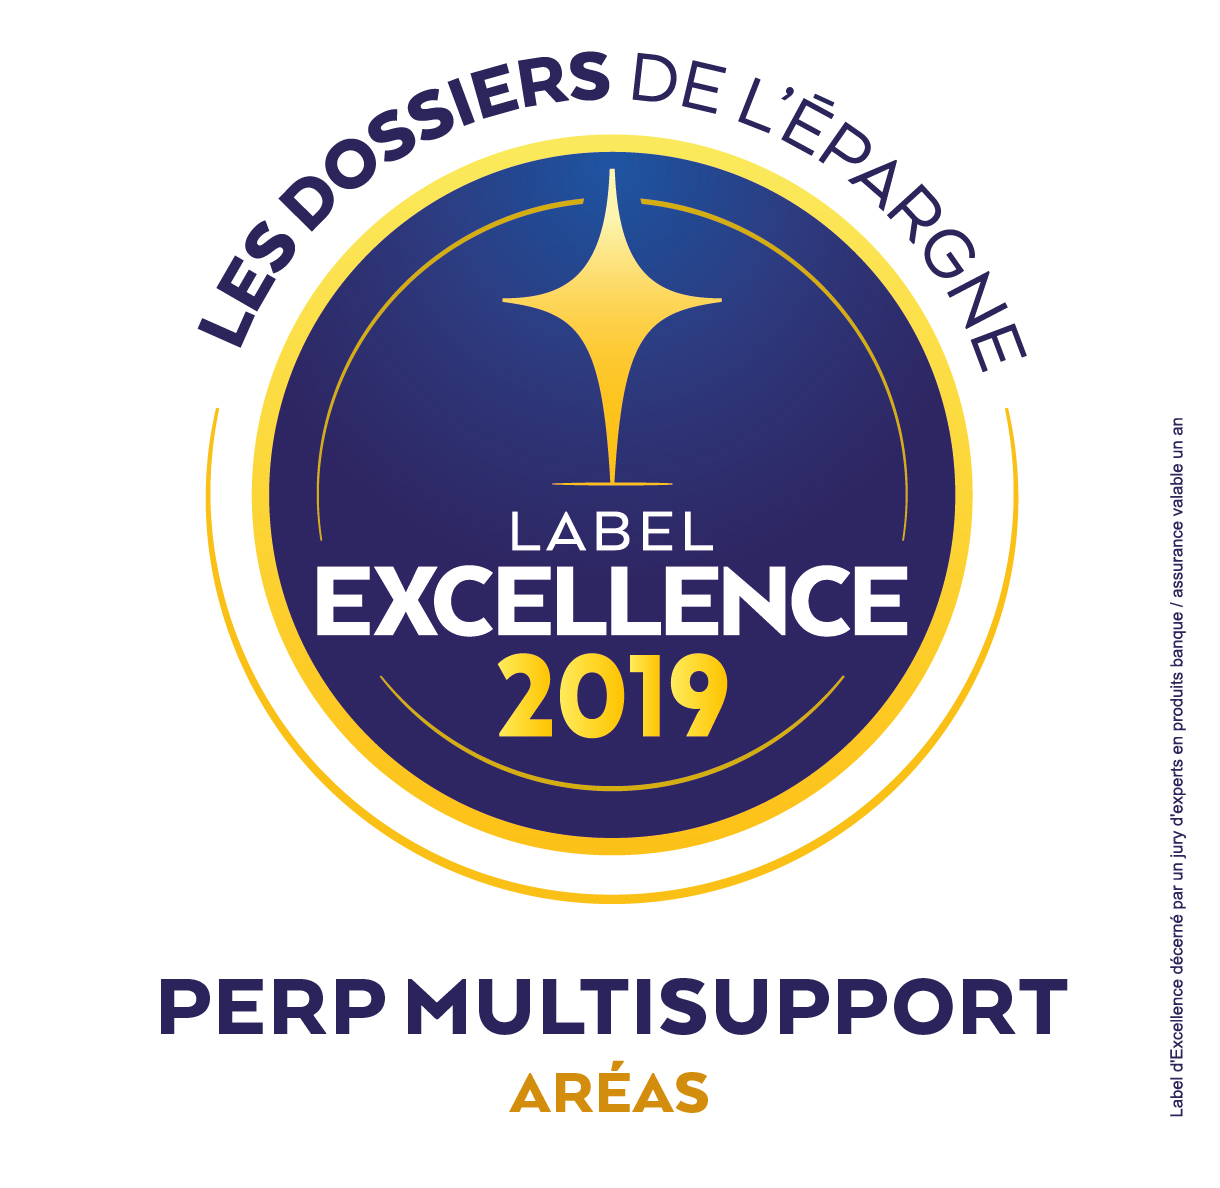 Label Excellence 2019 PERP Multisupport